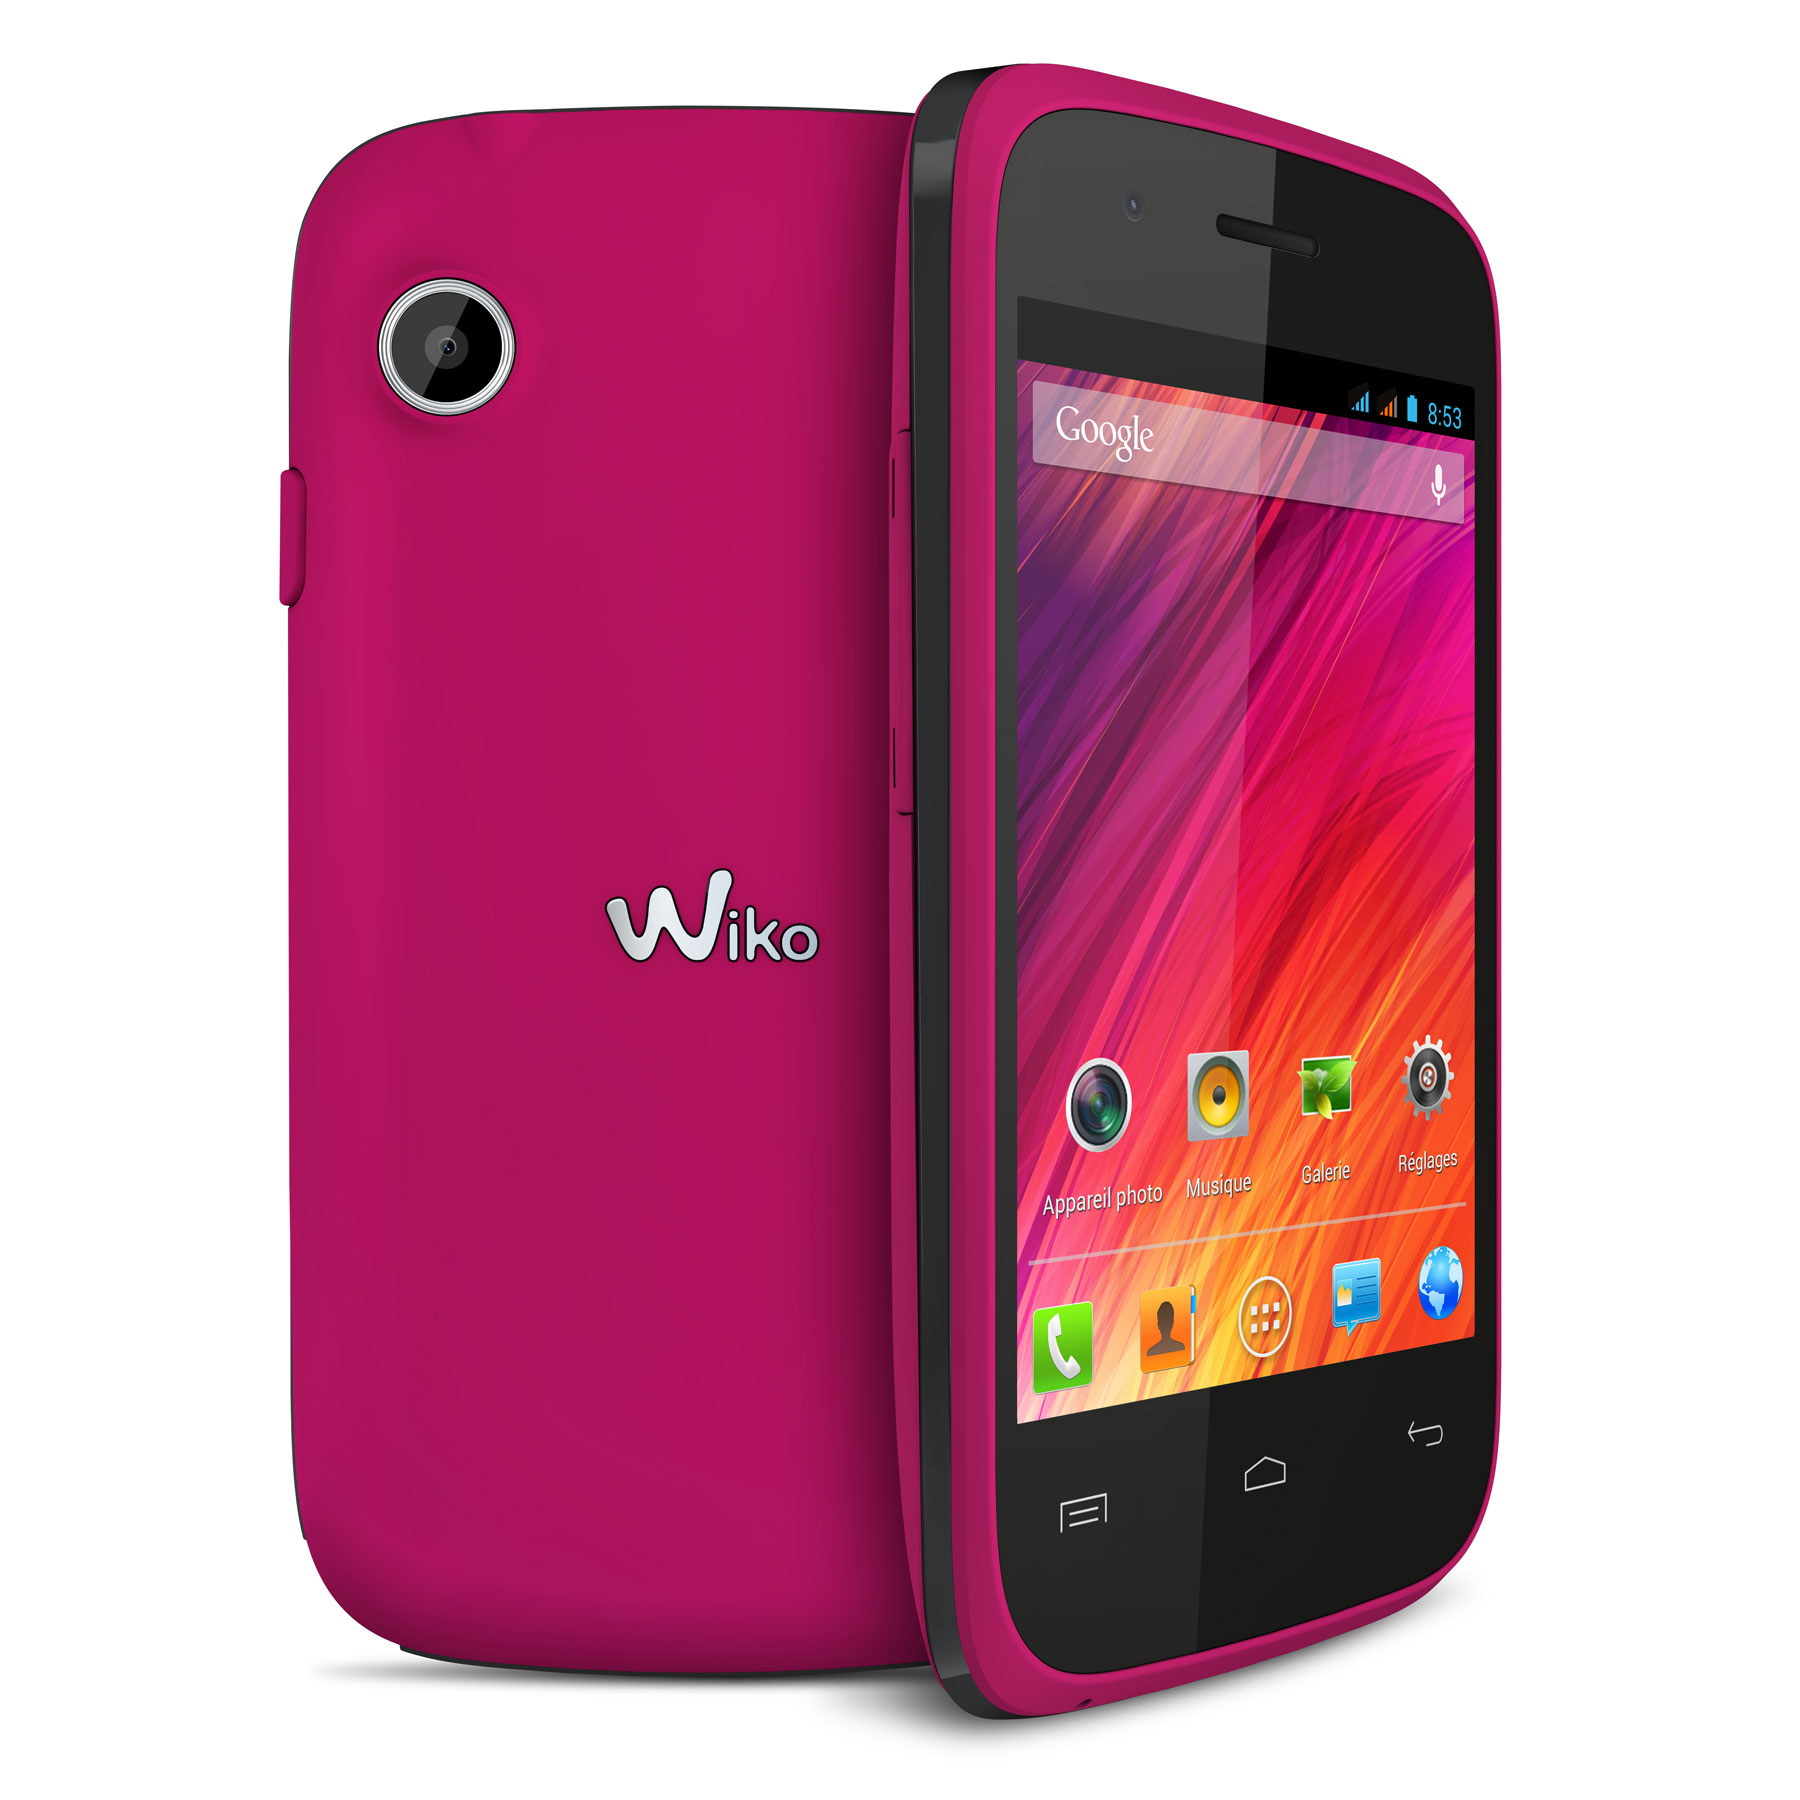 wiko ozzy rose fuchsia mobile smartphone wiko sur. Black Bedroom Furniture Sets. Home Design Ideas